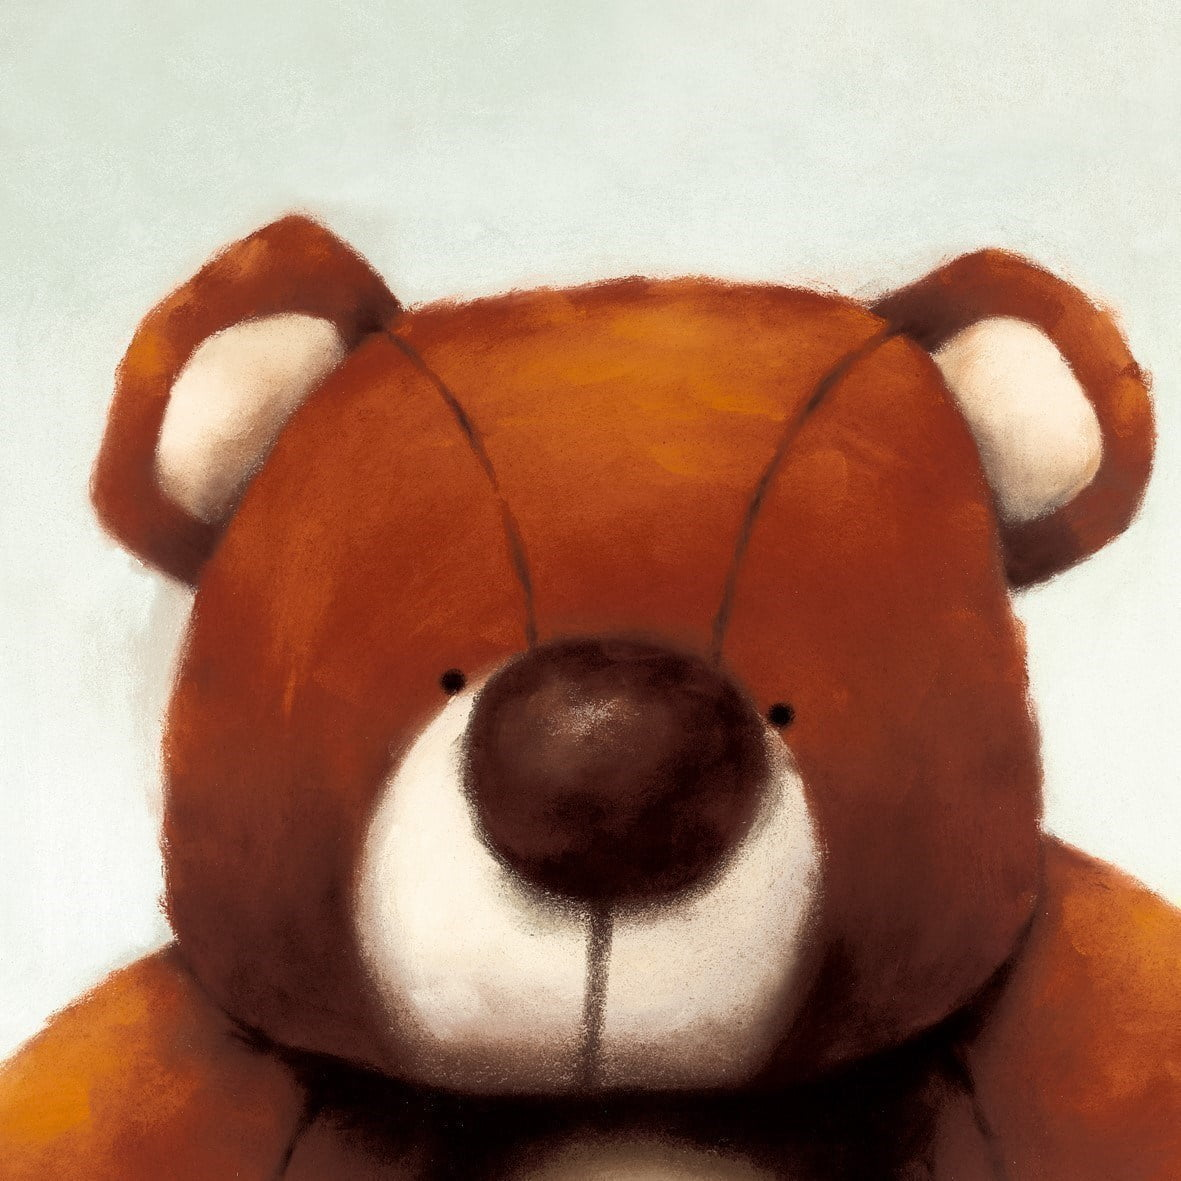 Big bear ~ Doug Hyde